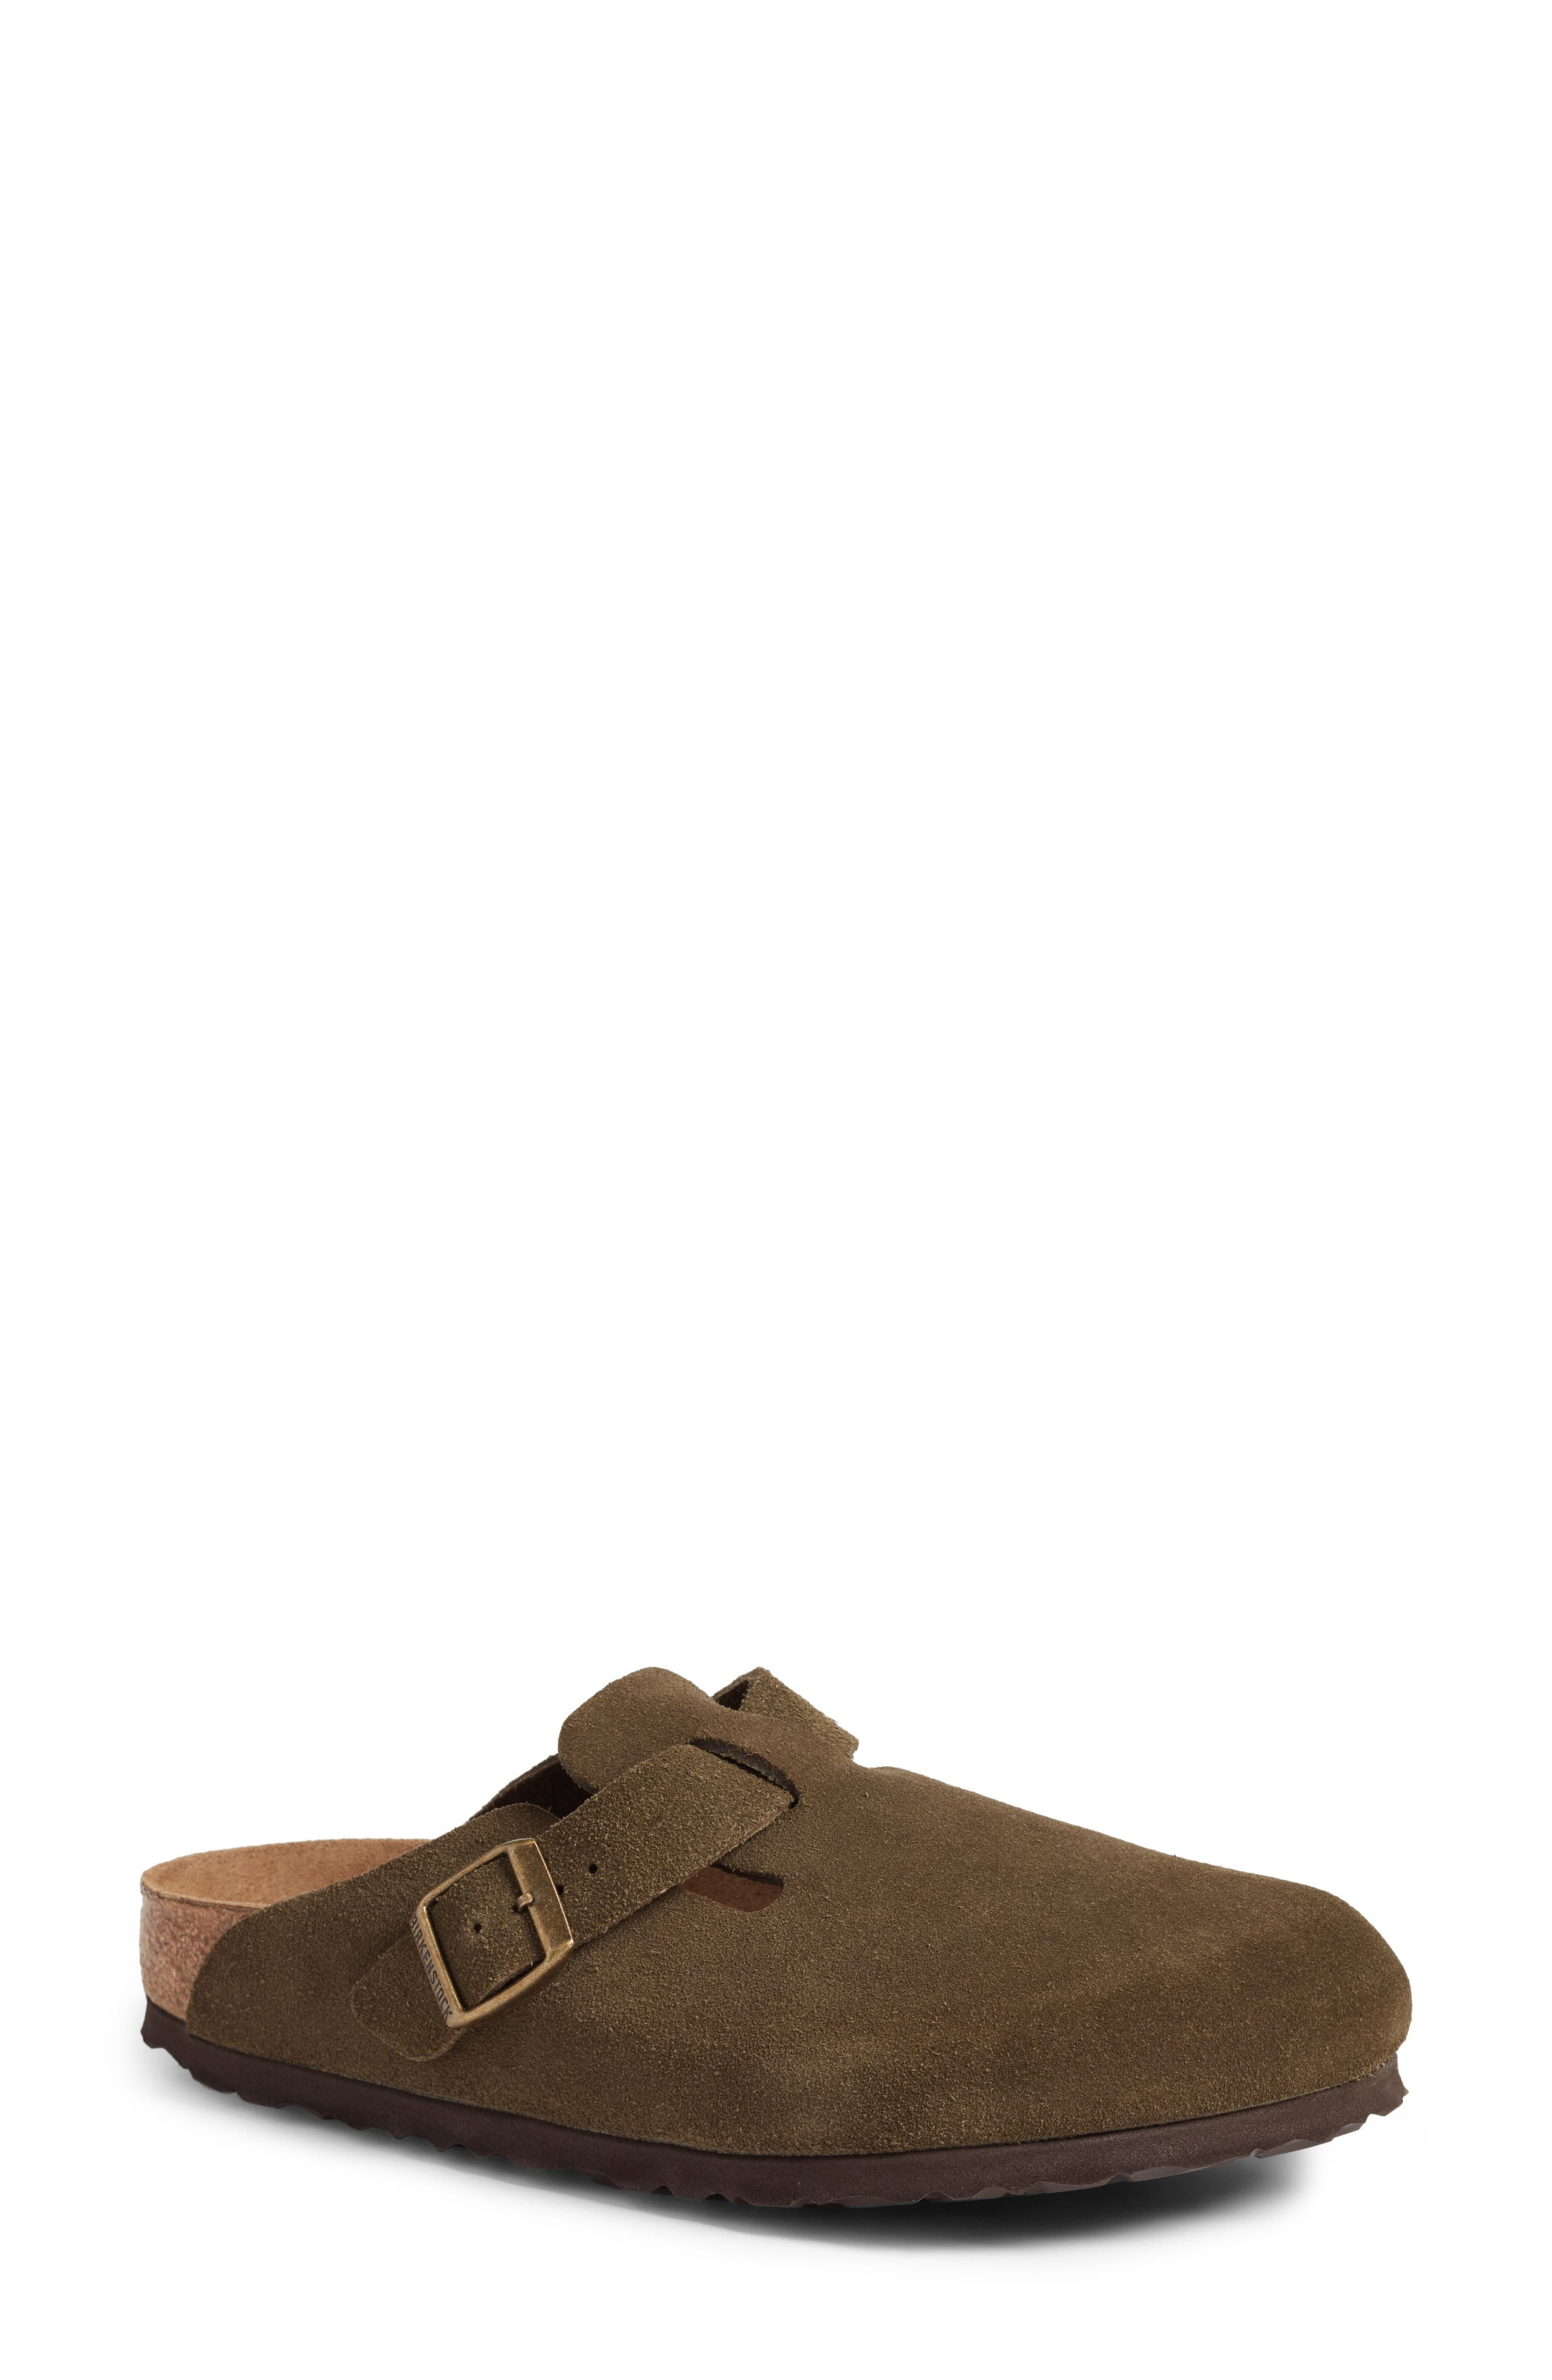 'Boston' Soft Footbed Clog,                         Main,                         color, Forest Suede